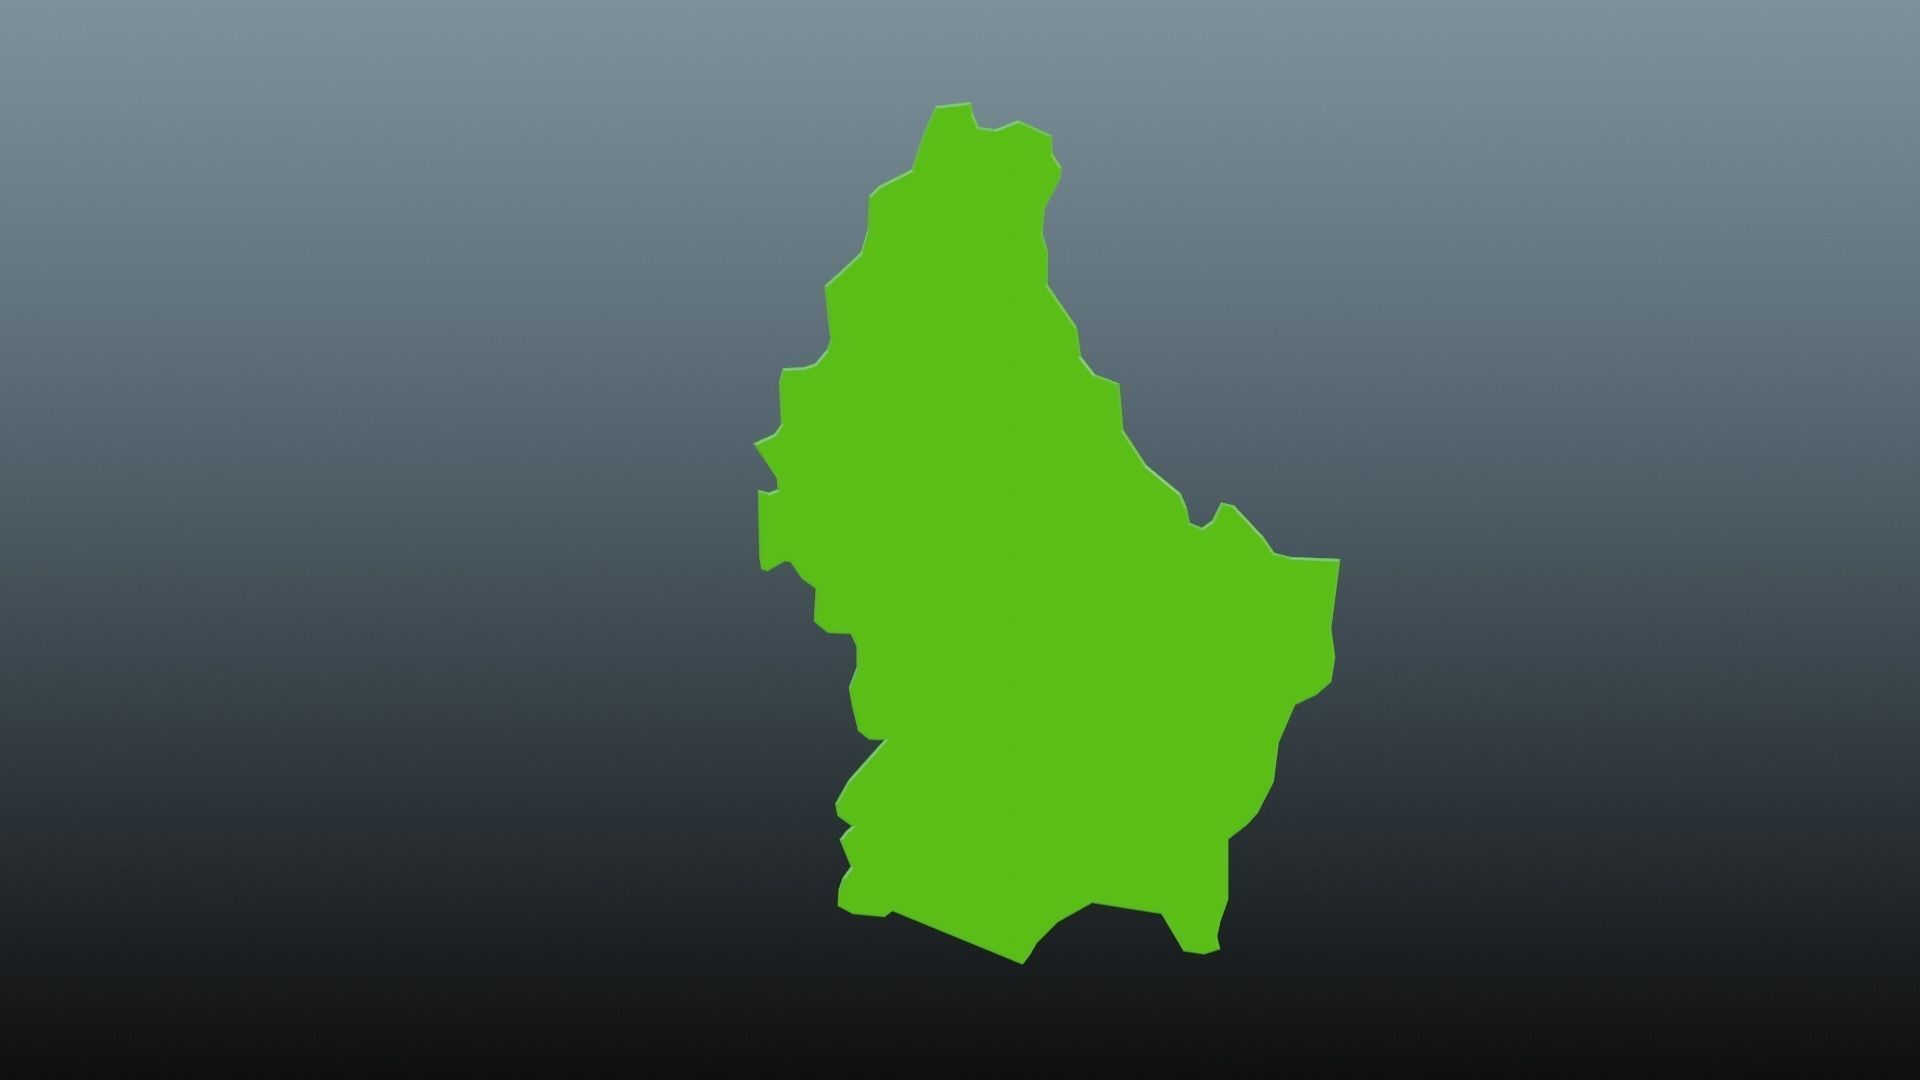 Luxembourg map symbol